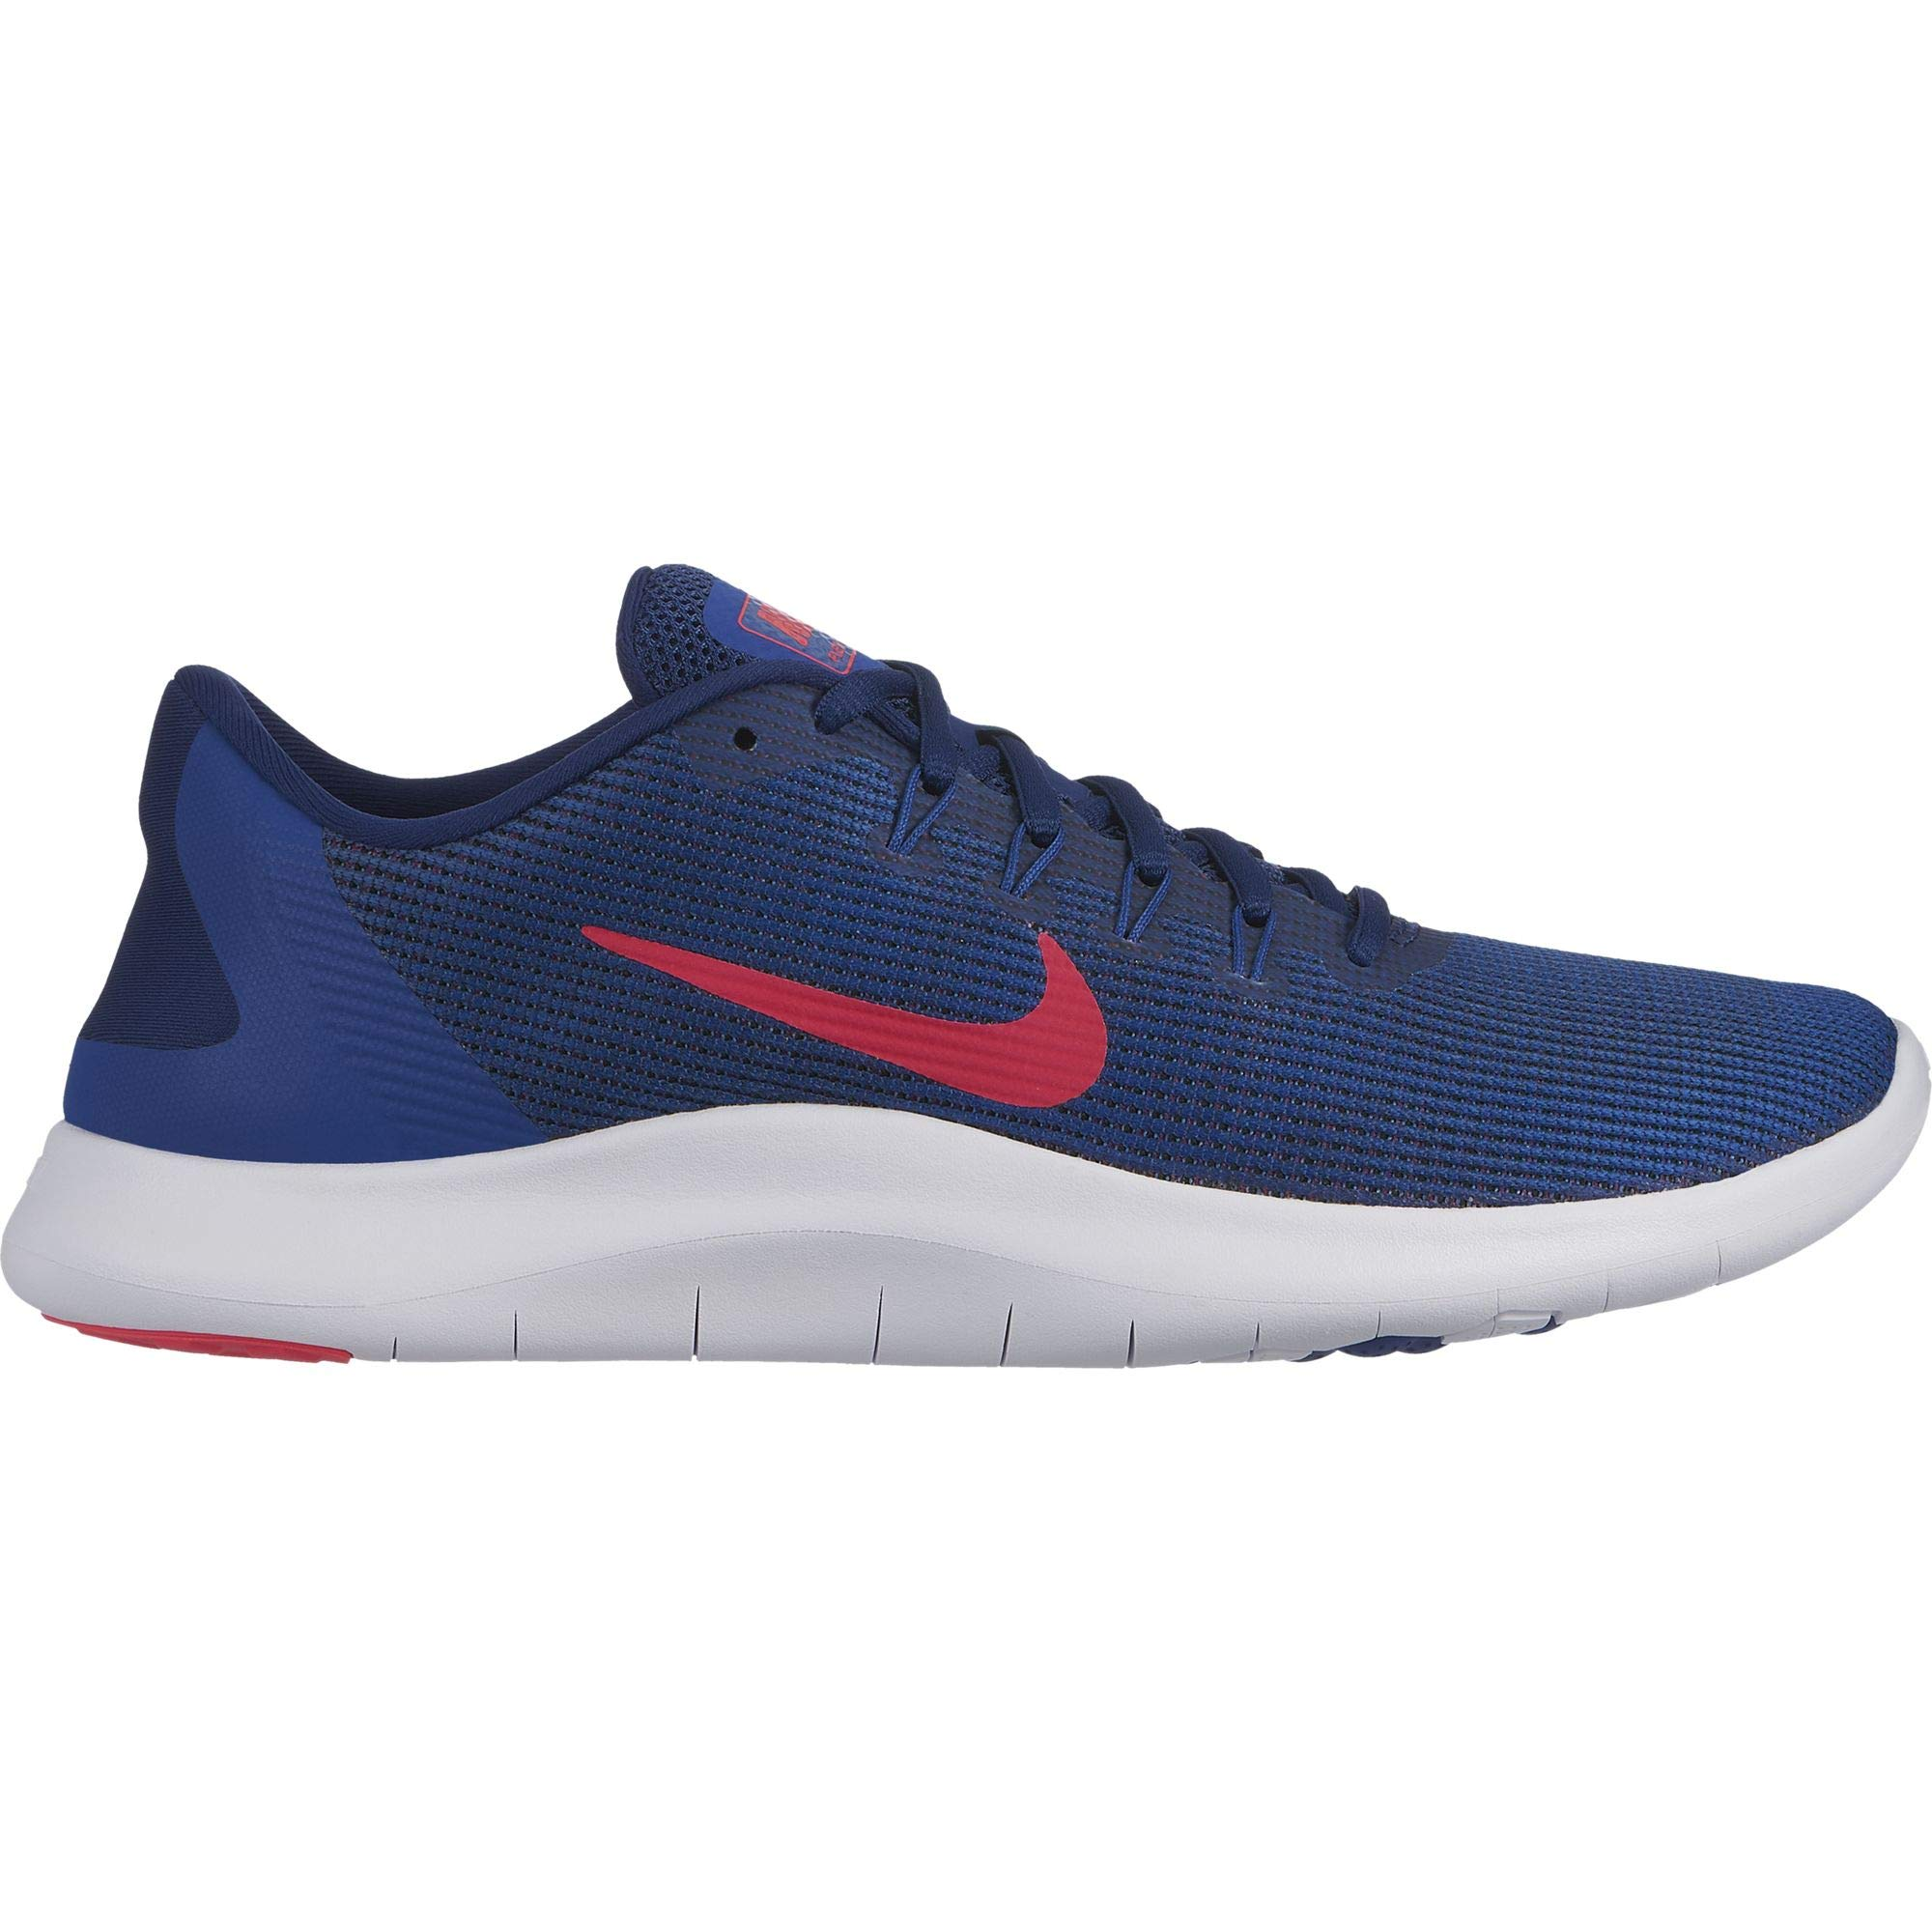 Nike Men's Flex RN 2018 Running Shoe Blue Void/Red Orbit/Indigo Force/White Size 11 M US